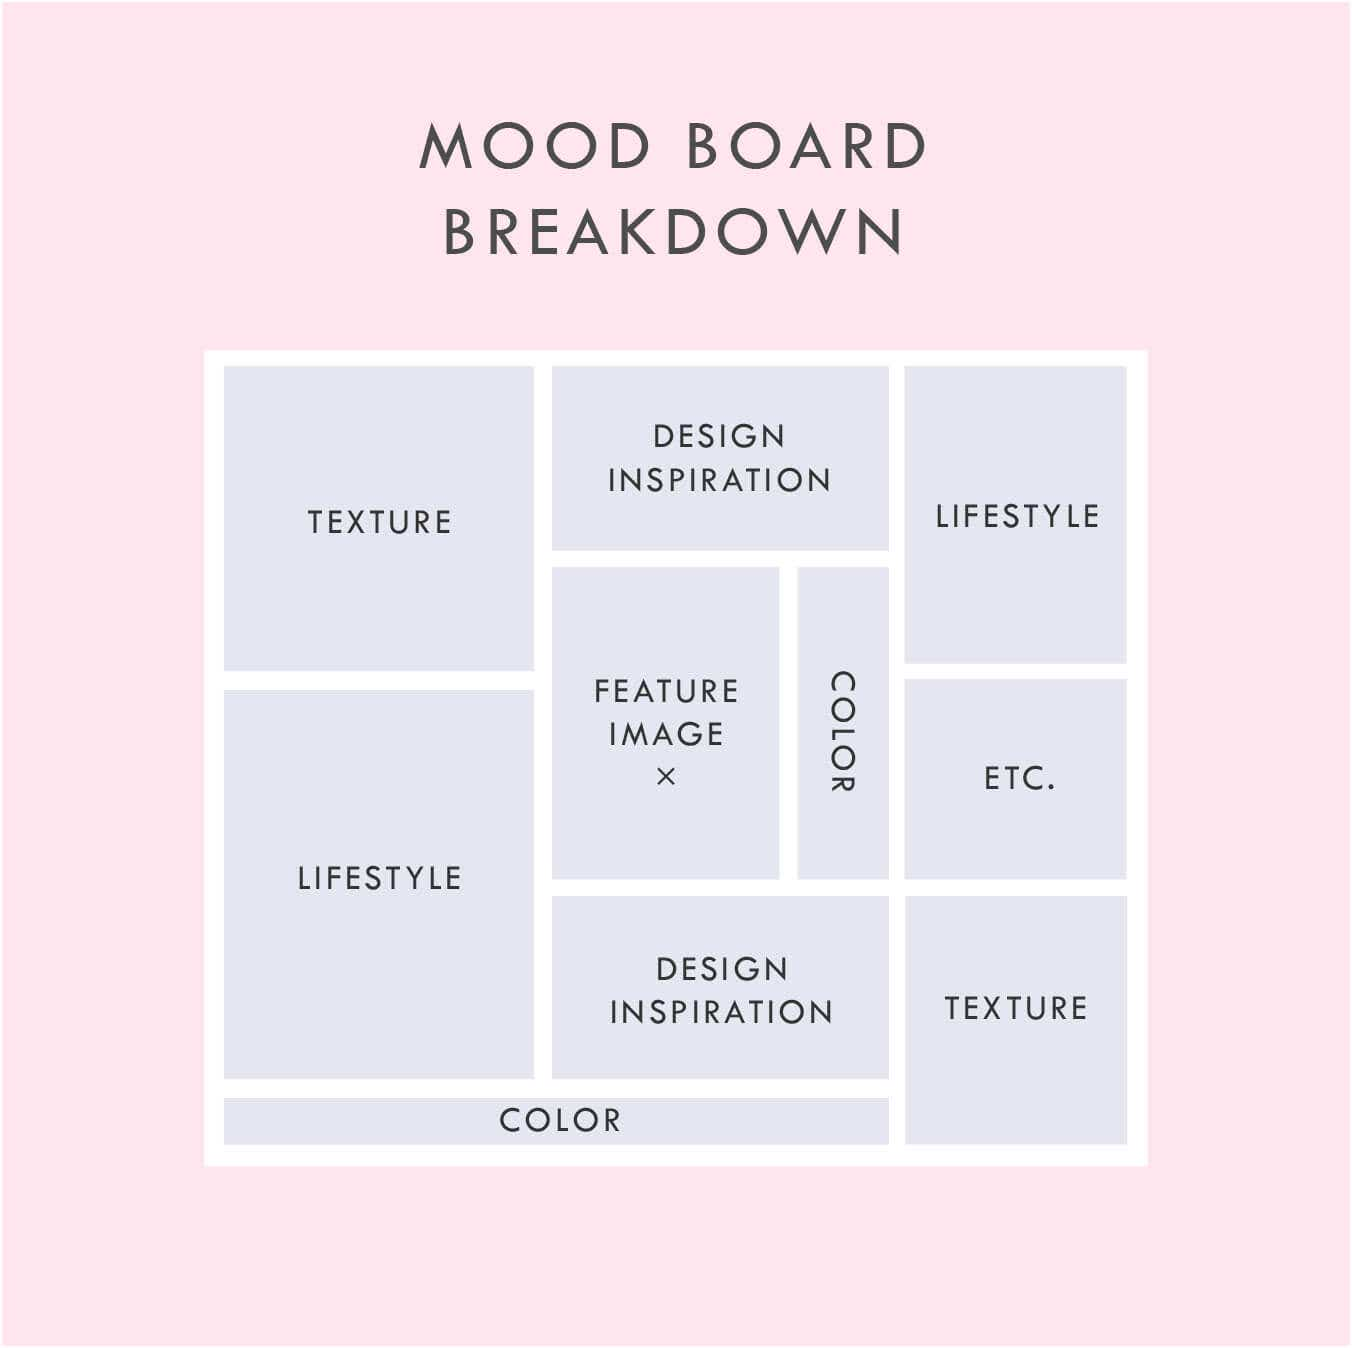 creating a mood board on canva